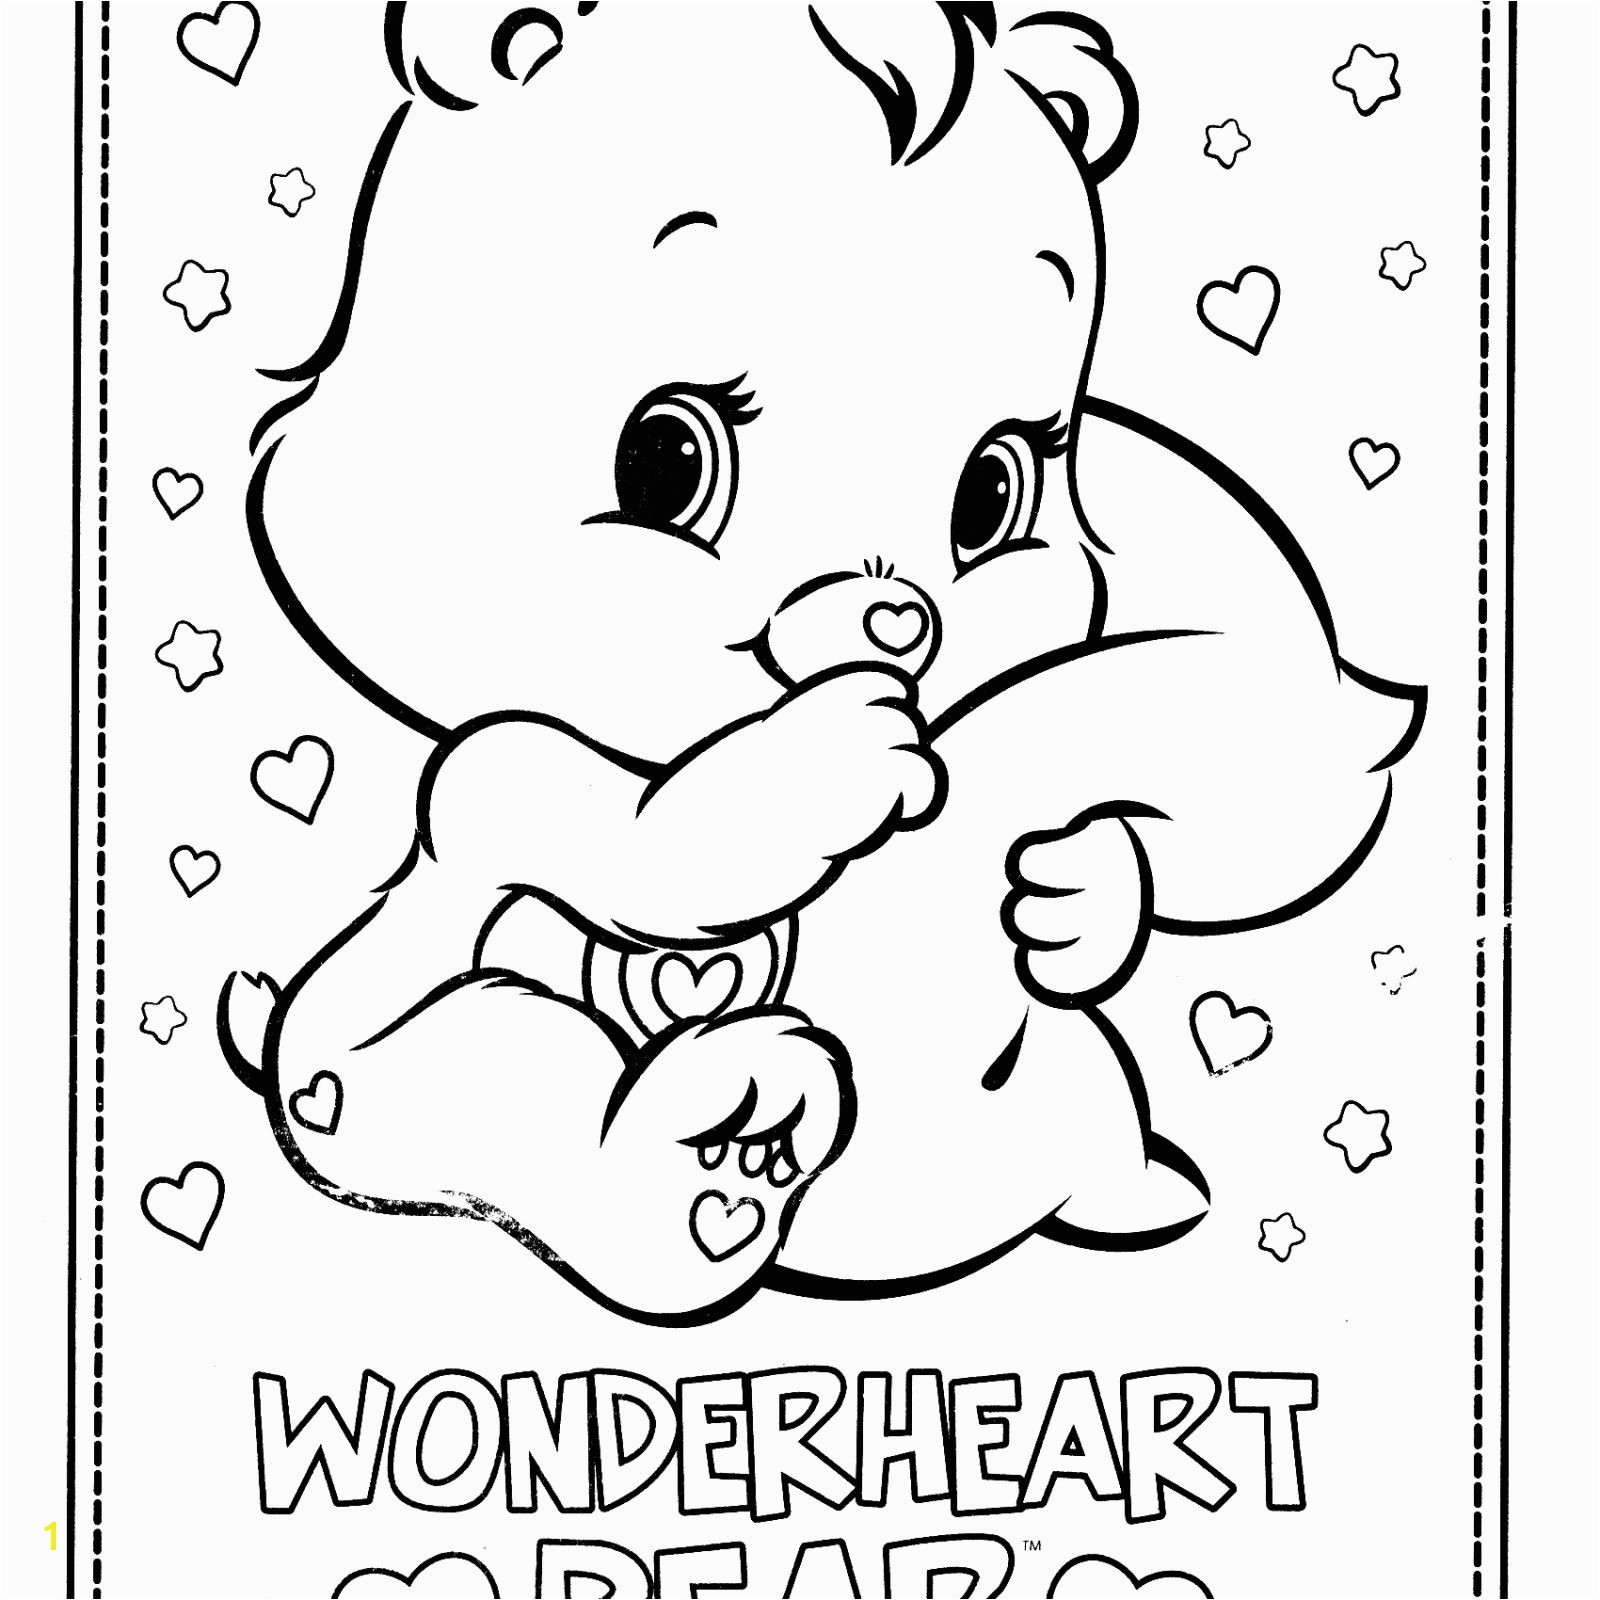 Care Bears Coloring Pages Care Bears 3 Cartoons – Printable Coloring Pages